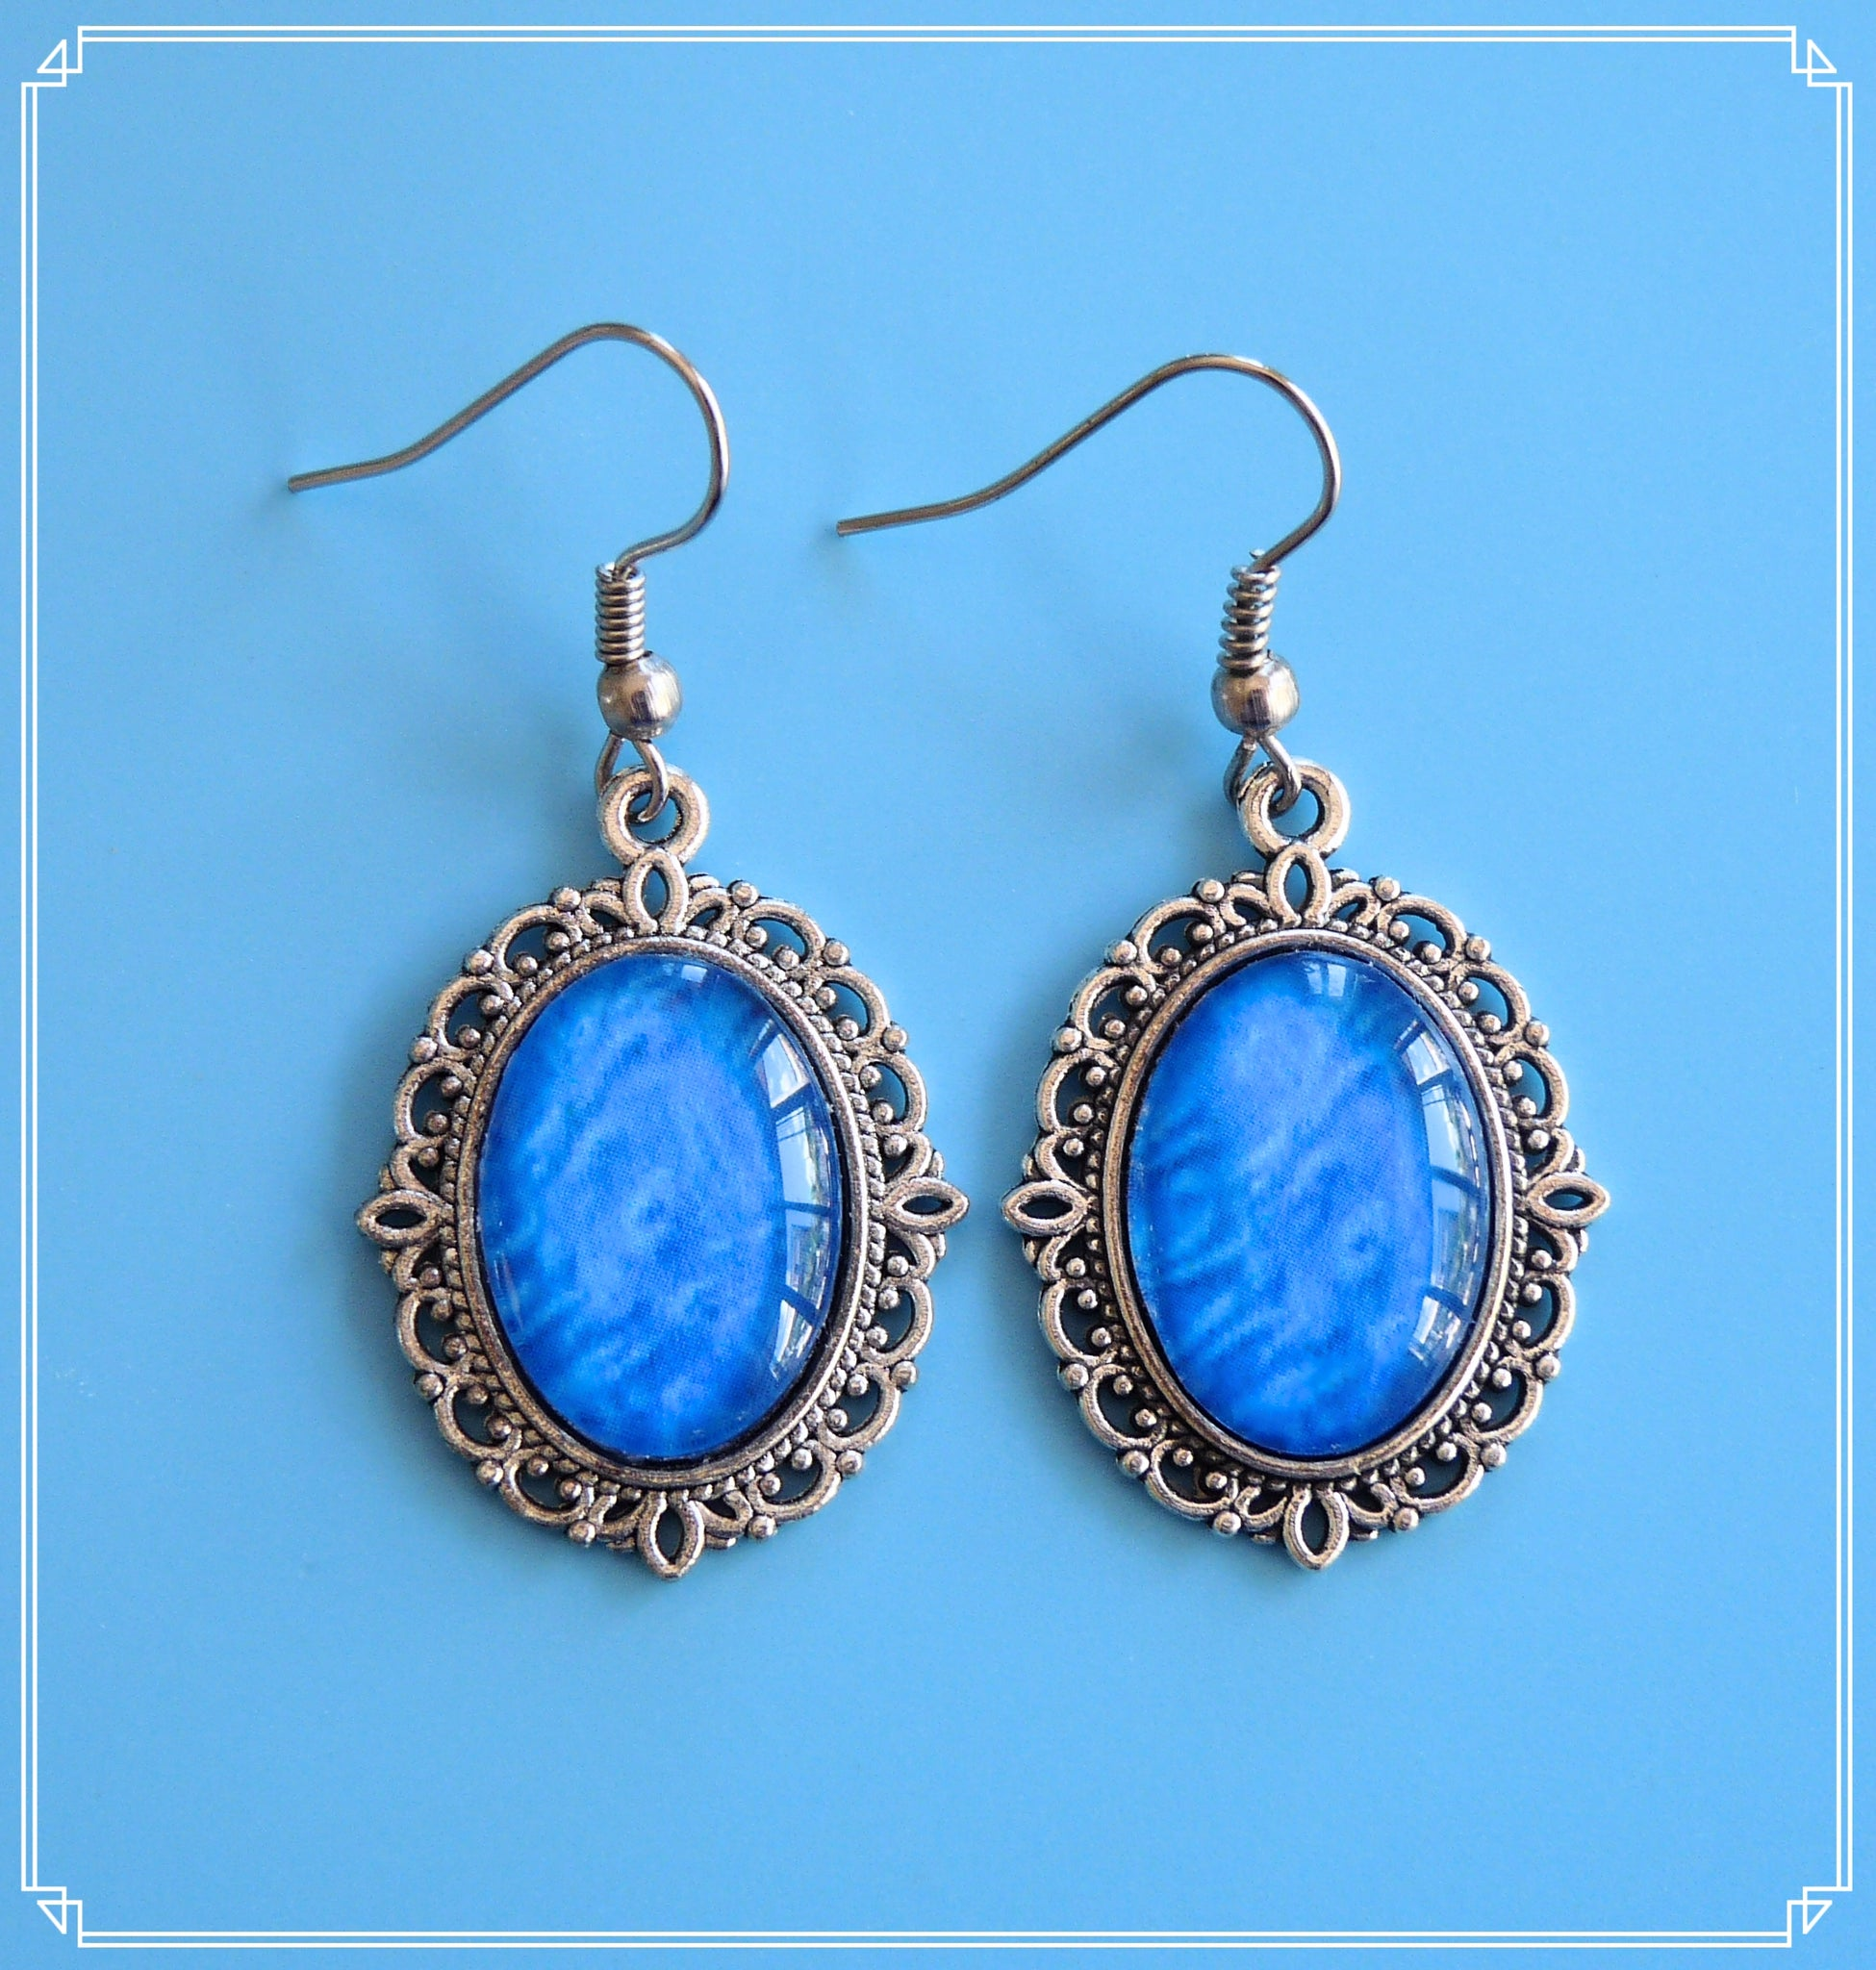 Calm (blue brocade drop earrings are part of my Colour Your World collection.